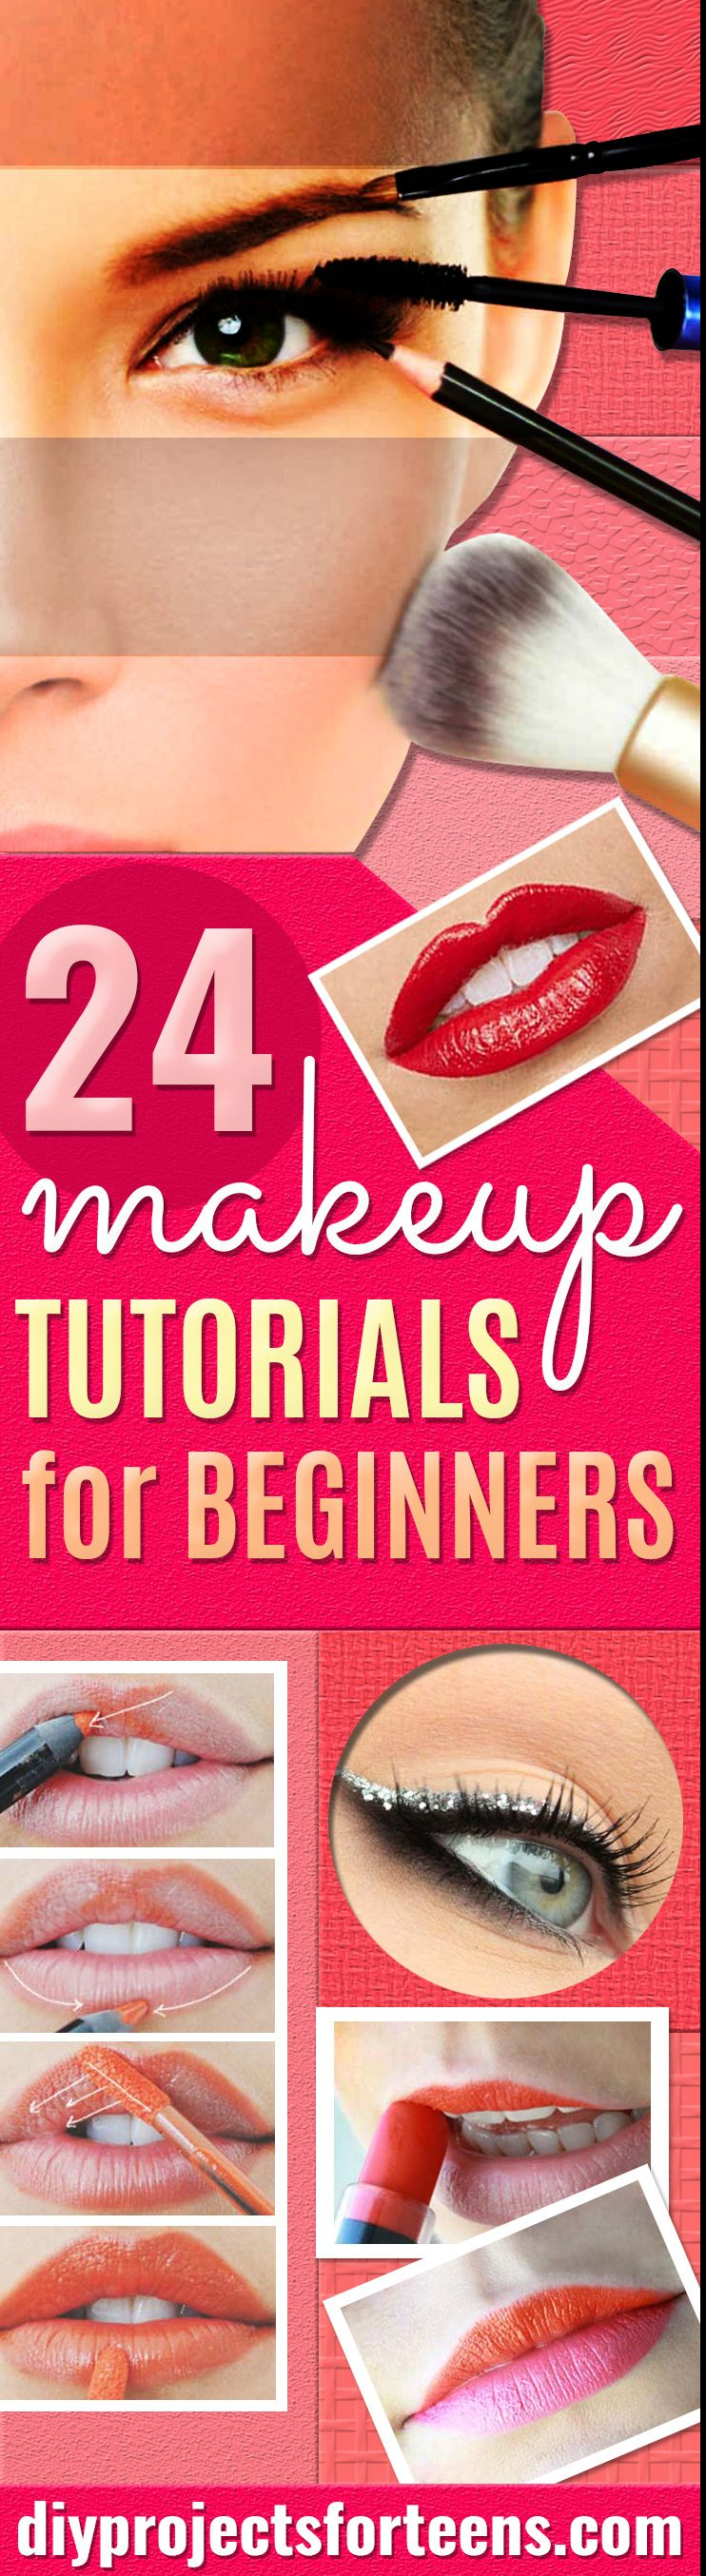 Best Makeup Tutorials for Teens - Easy Makeup Ideas for Beginners - Step by Step Tutorials for Foundation, Eye Shadow, Lipstick, Cheeks, Contour, Eyebrows and Eyes - Awesome Makeup Hacks and Tips for Simple DIY Beauty - Day and Evening Looks